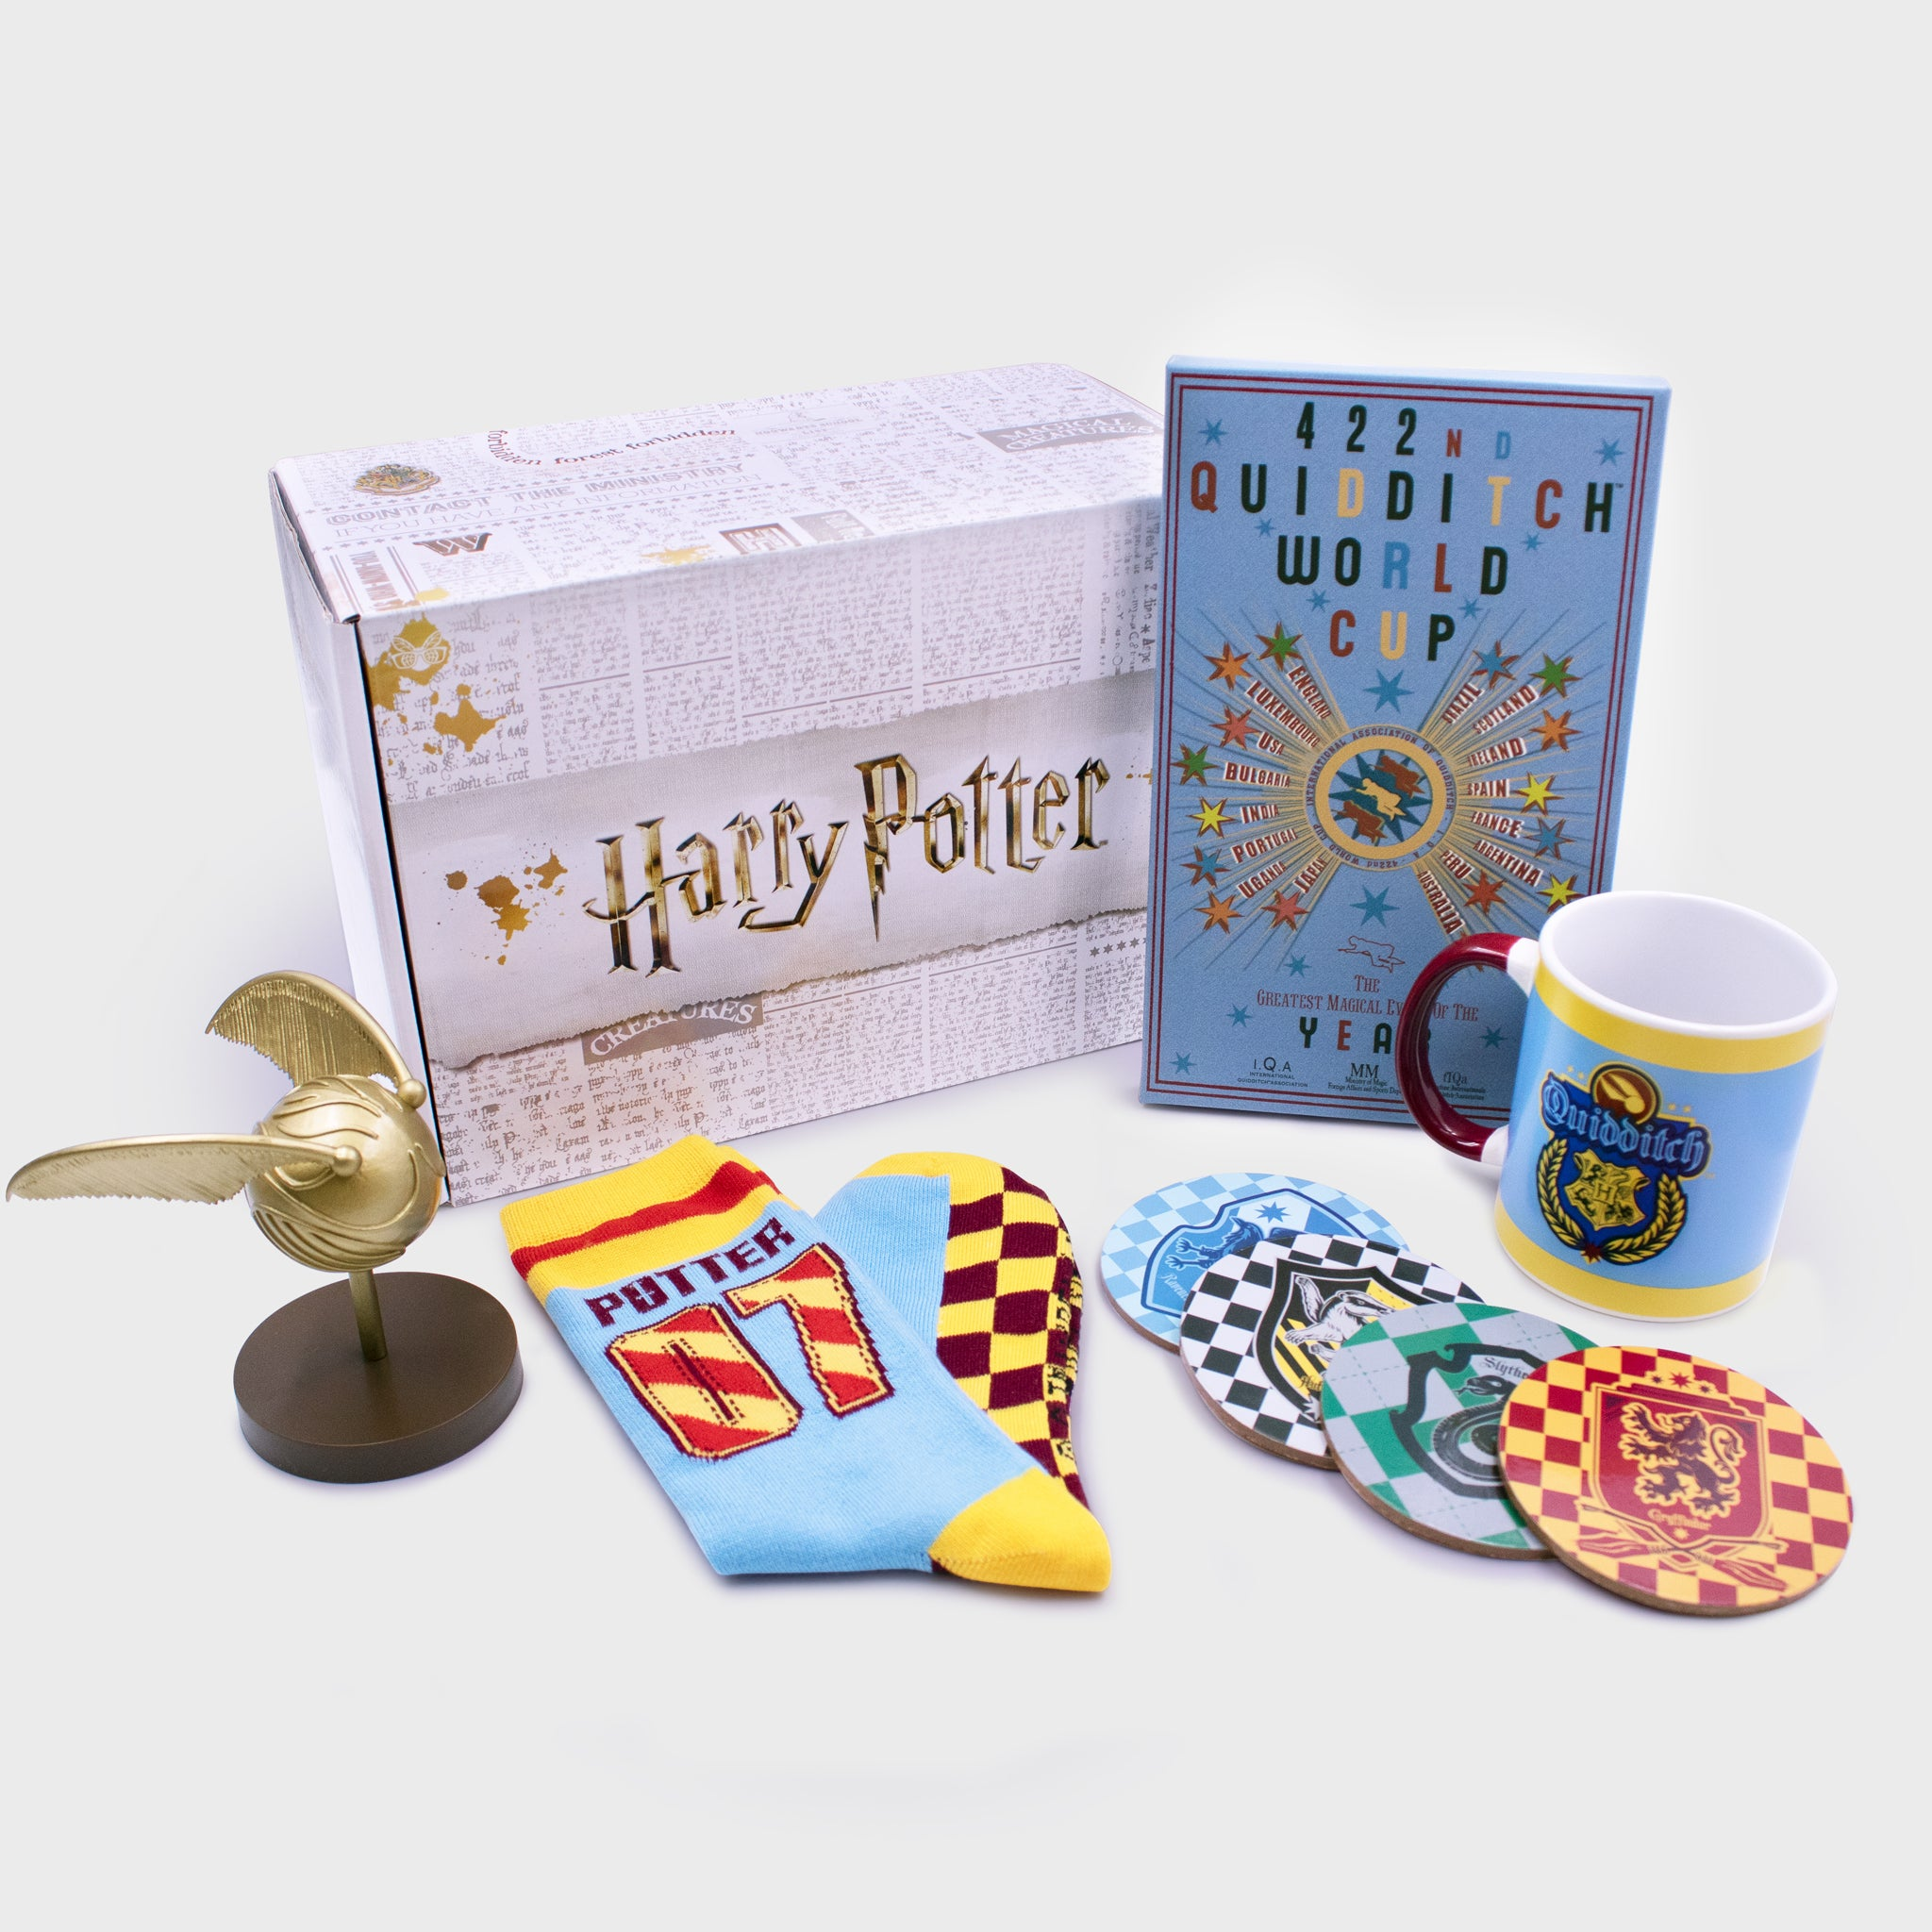 harry potter wizarding world quidditch warner brothers walmart retail box collectibles home good accessories exclusive culturefly